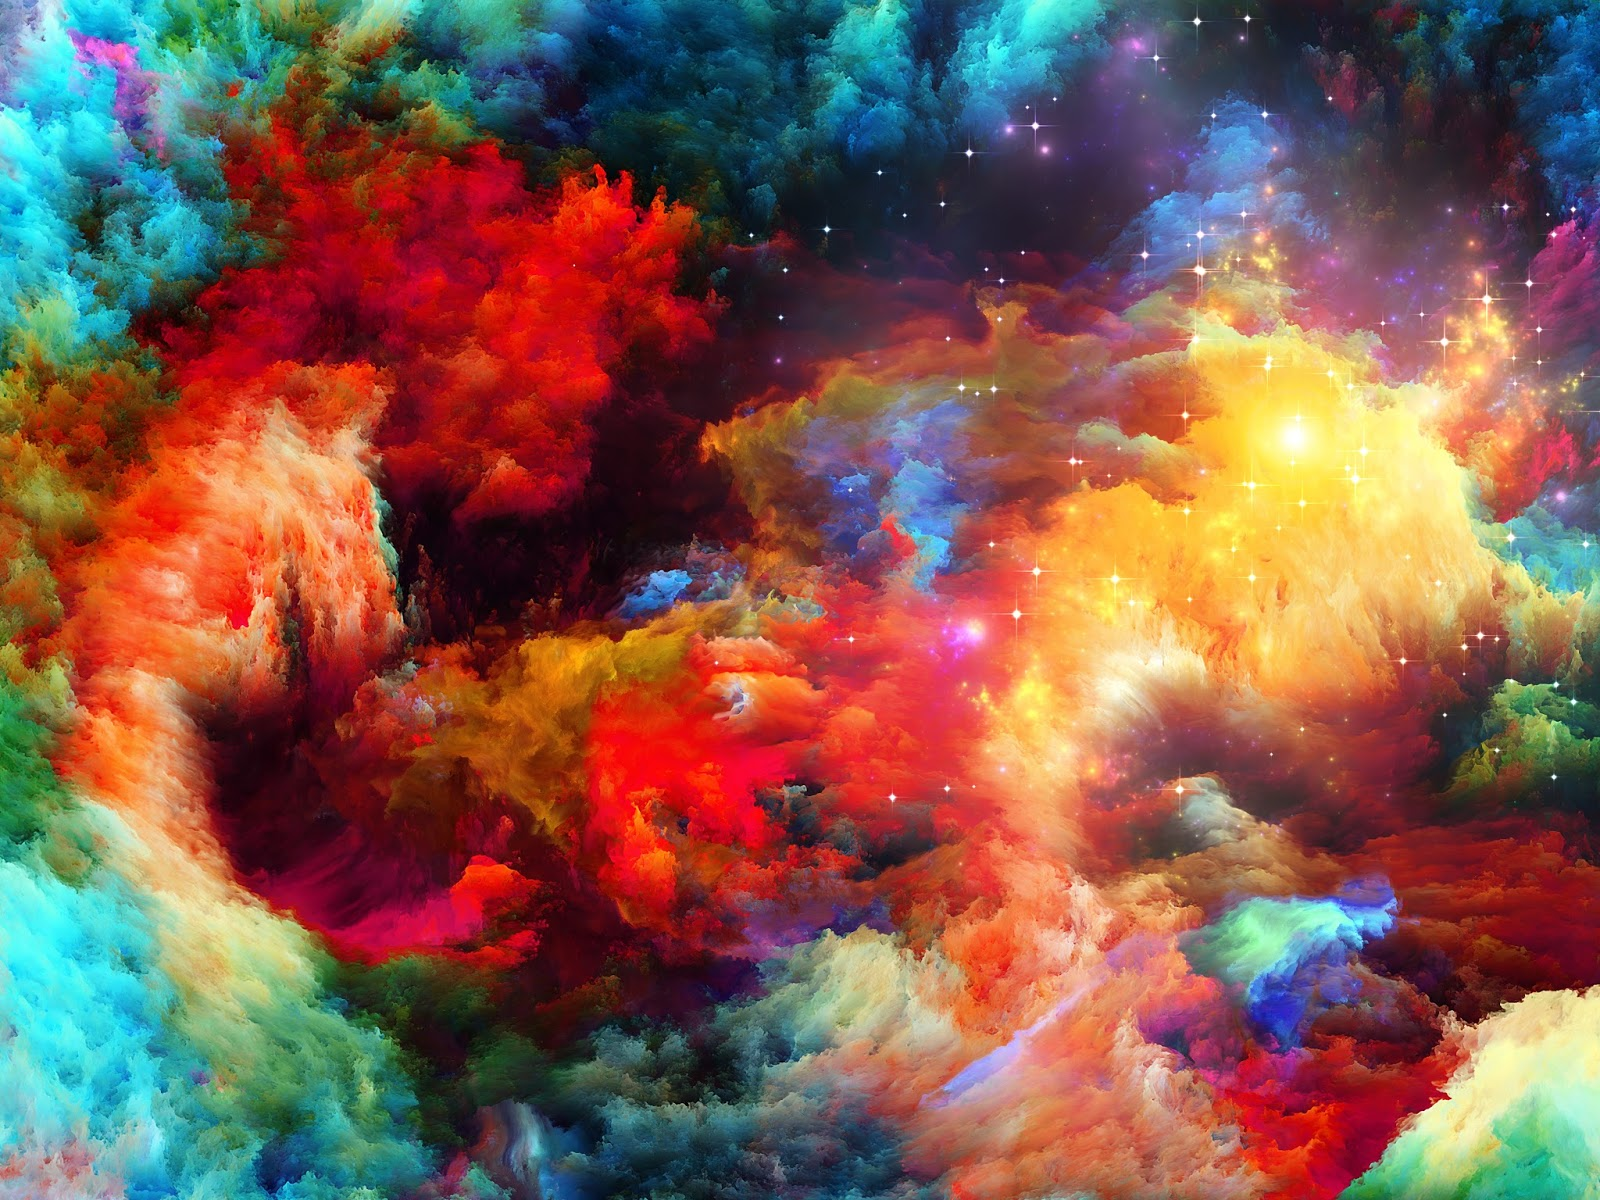 colourful fantasy cloud backgrounds   naveengfx